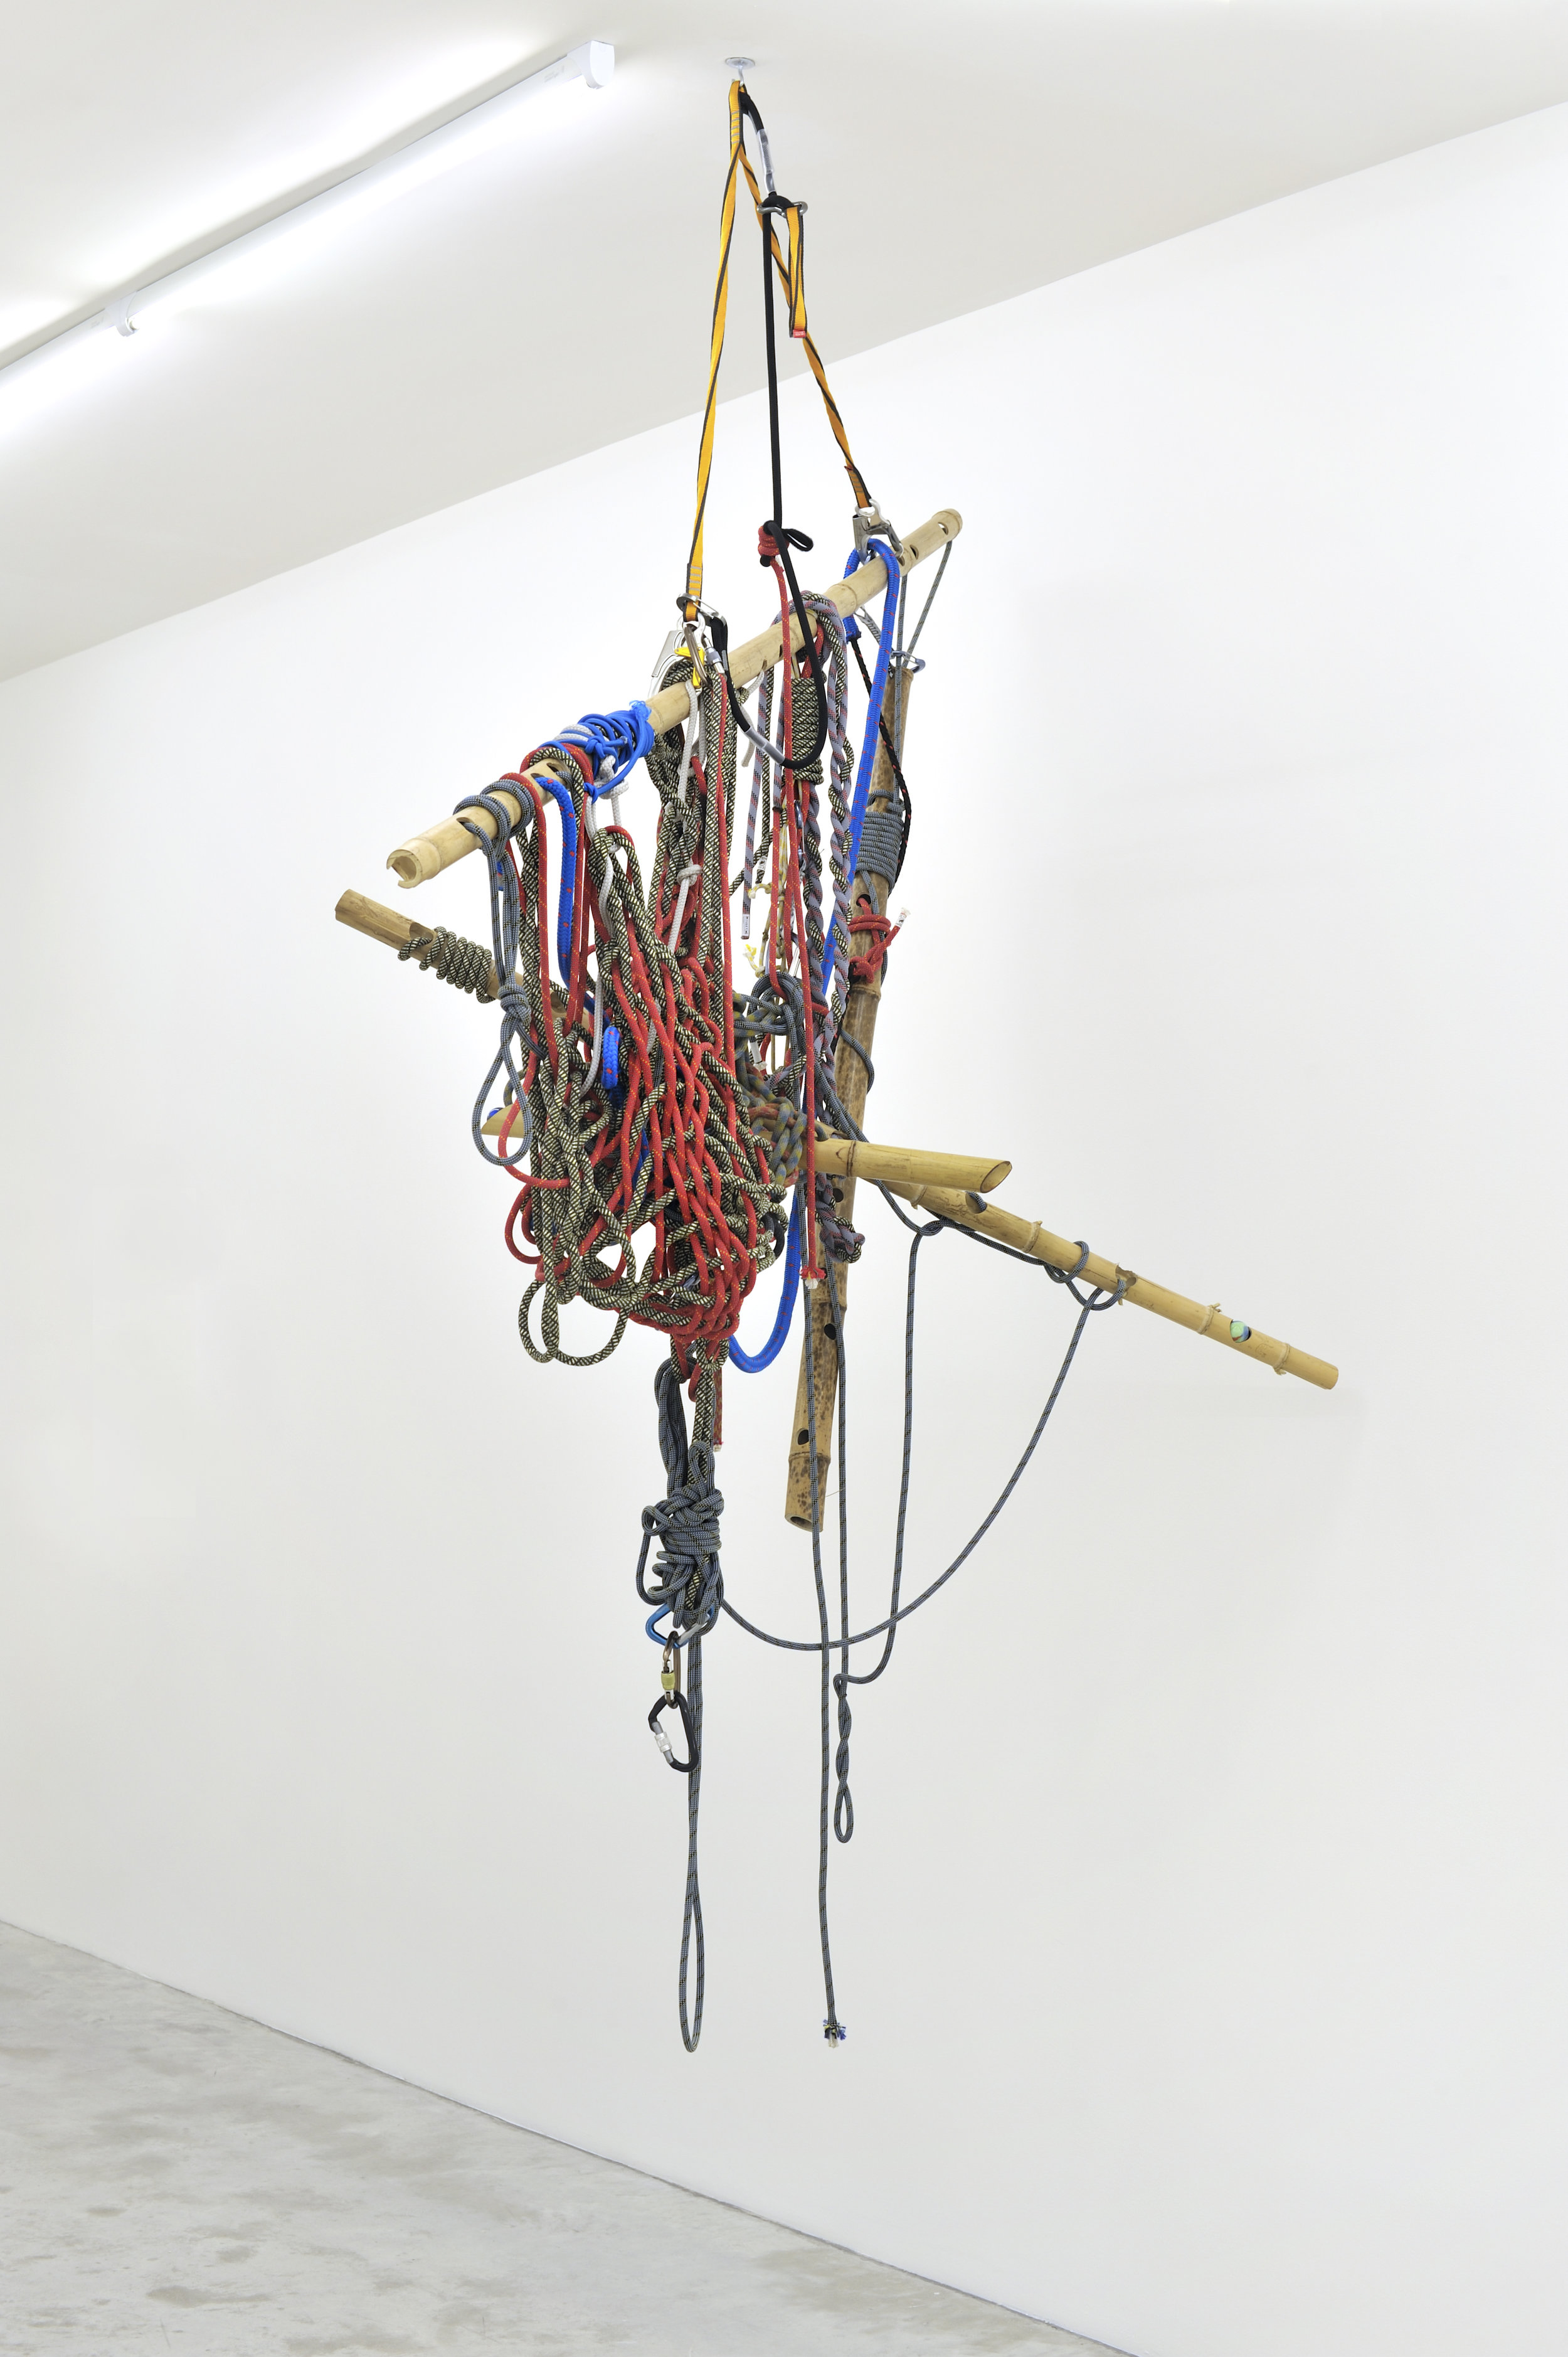 Tobias Madison & Kaspar Müller, Untitled, 2011 bamboo, climbing ropes, carabiner, mouth blown glass bowls 260 x 180 x 154 cm - 102 3/8 x 70 7/8 x 60 5/8 inches